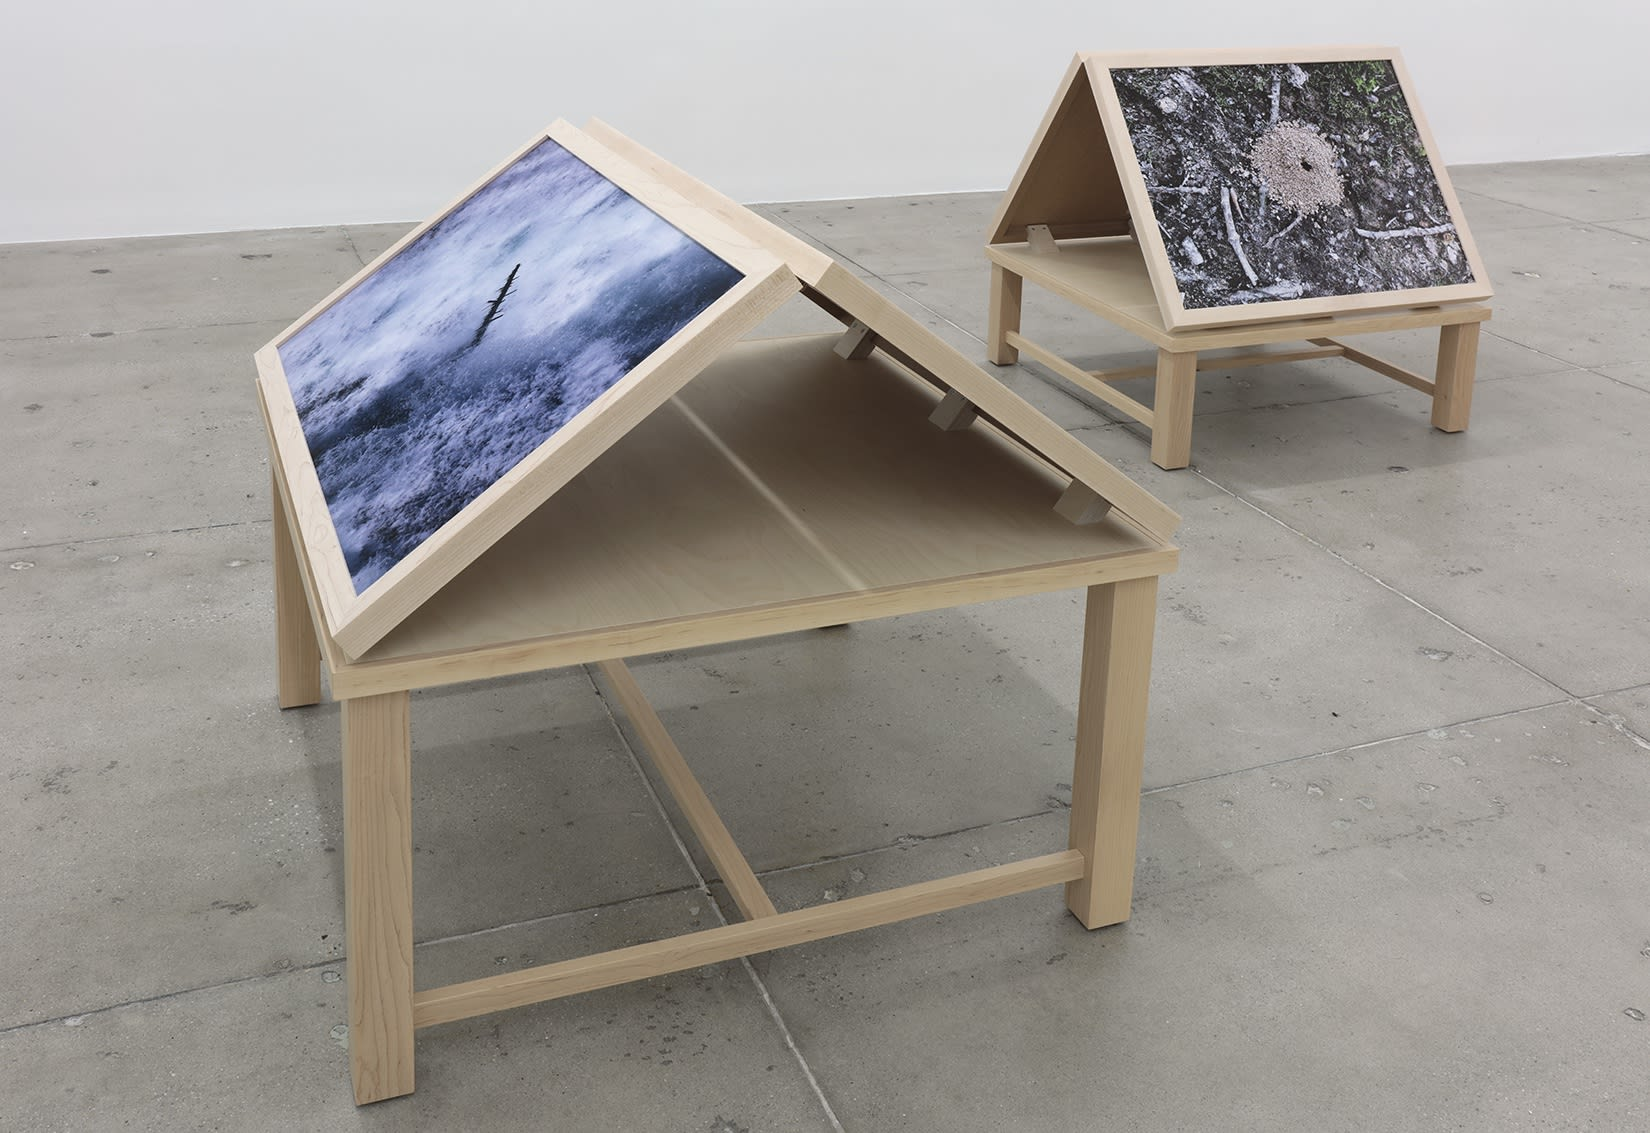 Two wooden stands on a concrete floor display color photographs; on the left, one of rushing water and on the right, an ant hill.